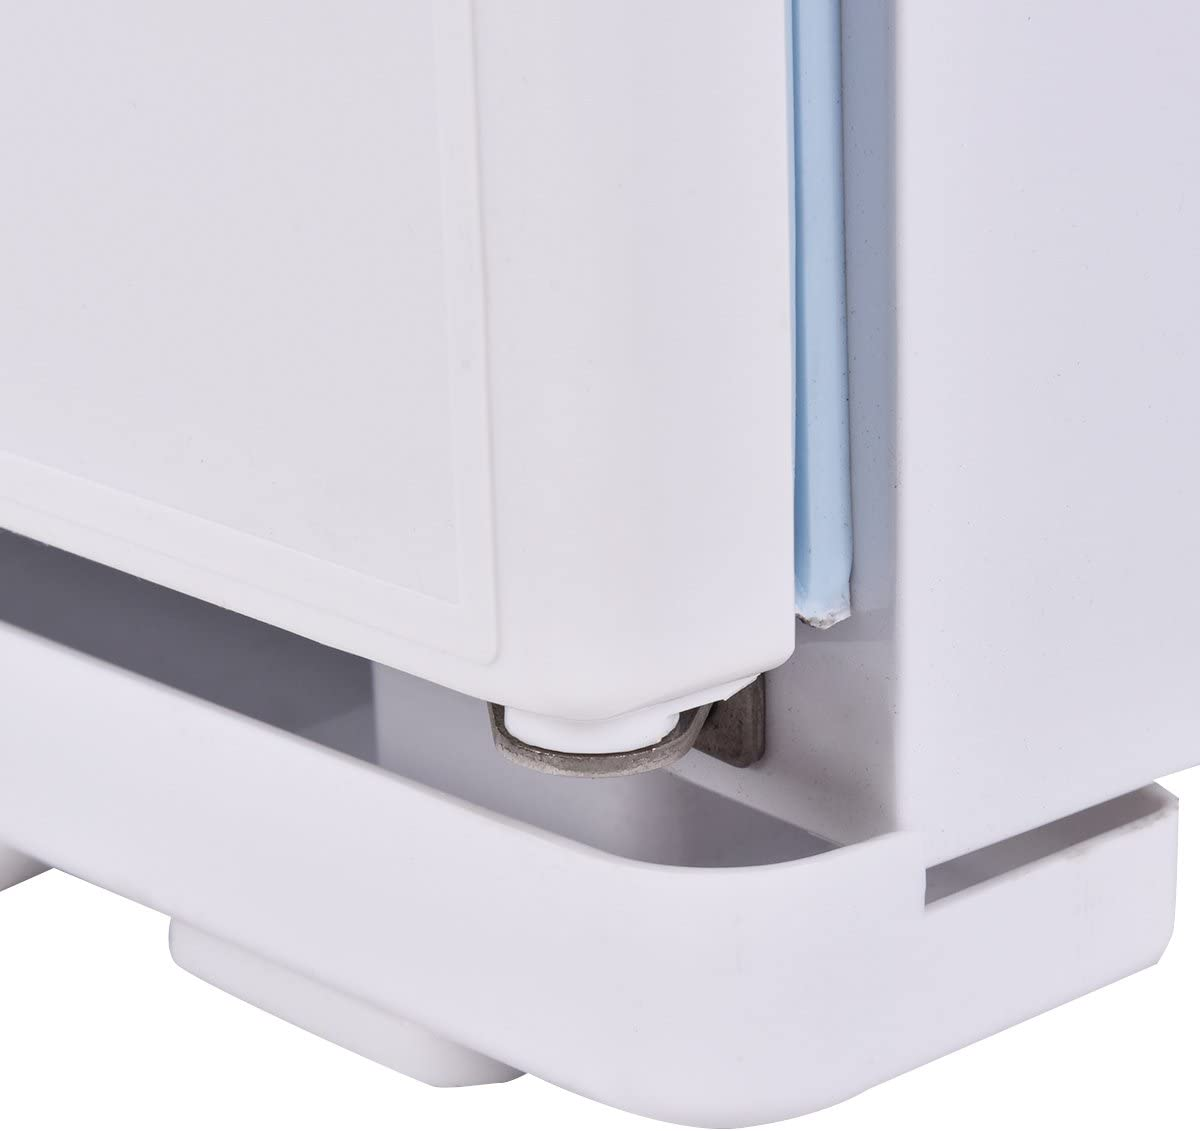 3-in-1 UV Sterilizer Disinfection Warmer Hot Facial Cabinet for Tool for Beauty Salon 200 W Spa and Home COSTWAY 16L Towel Warmer Towel Cabinet